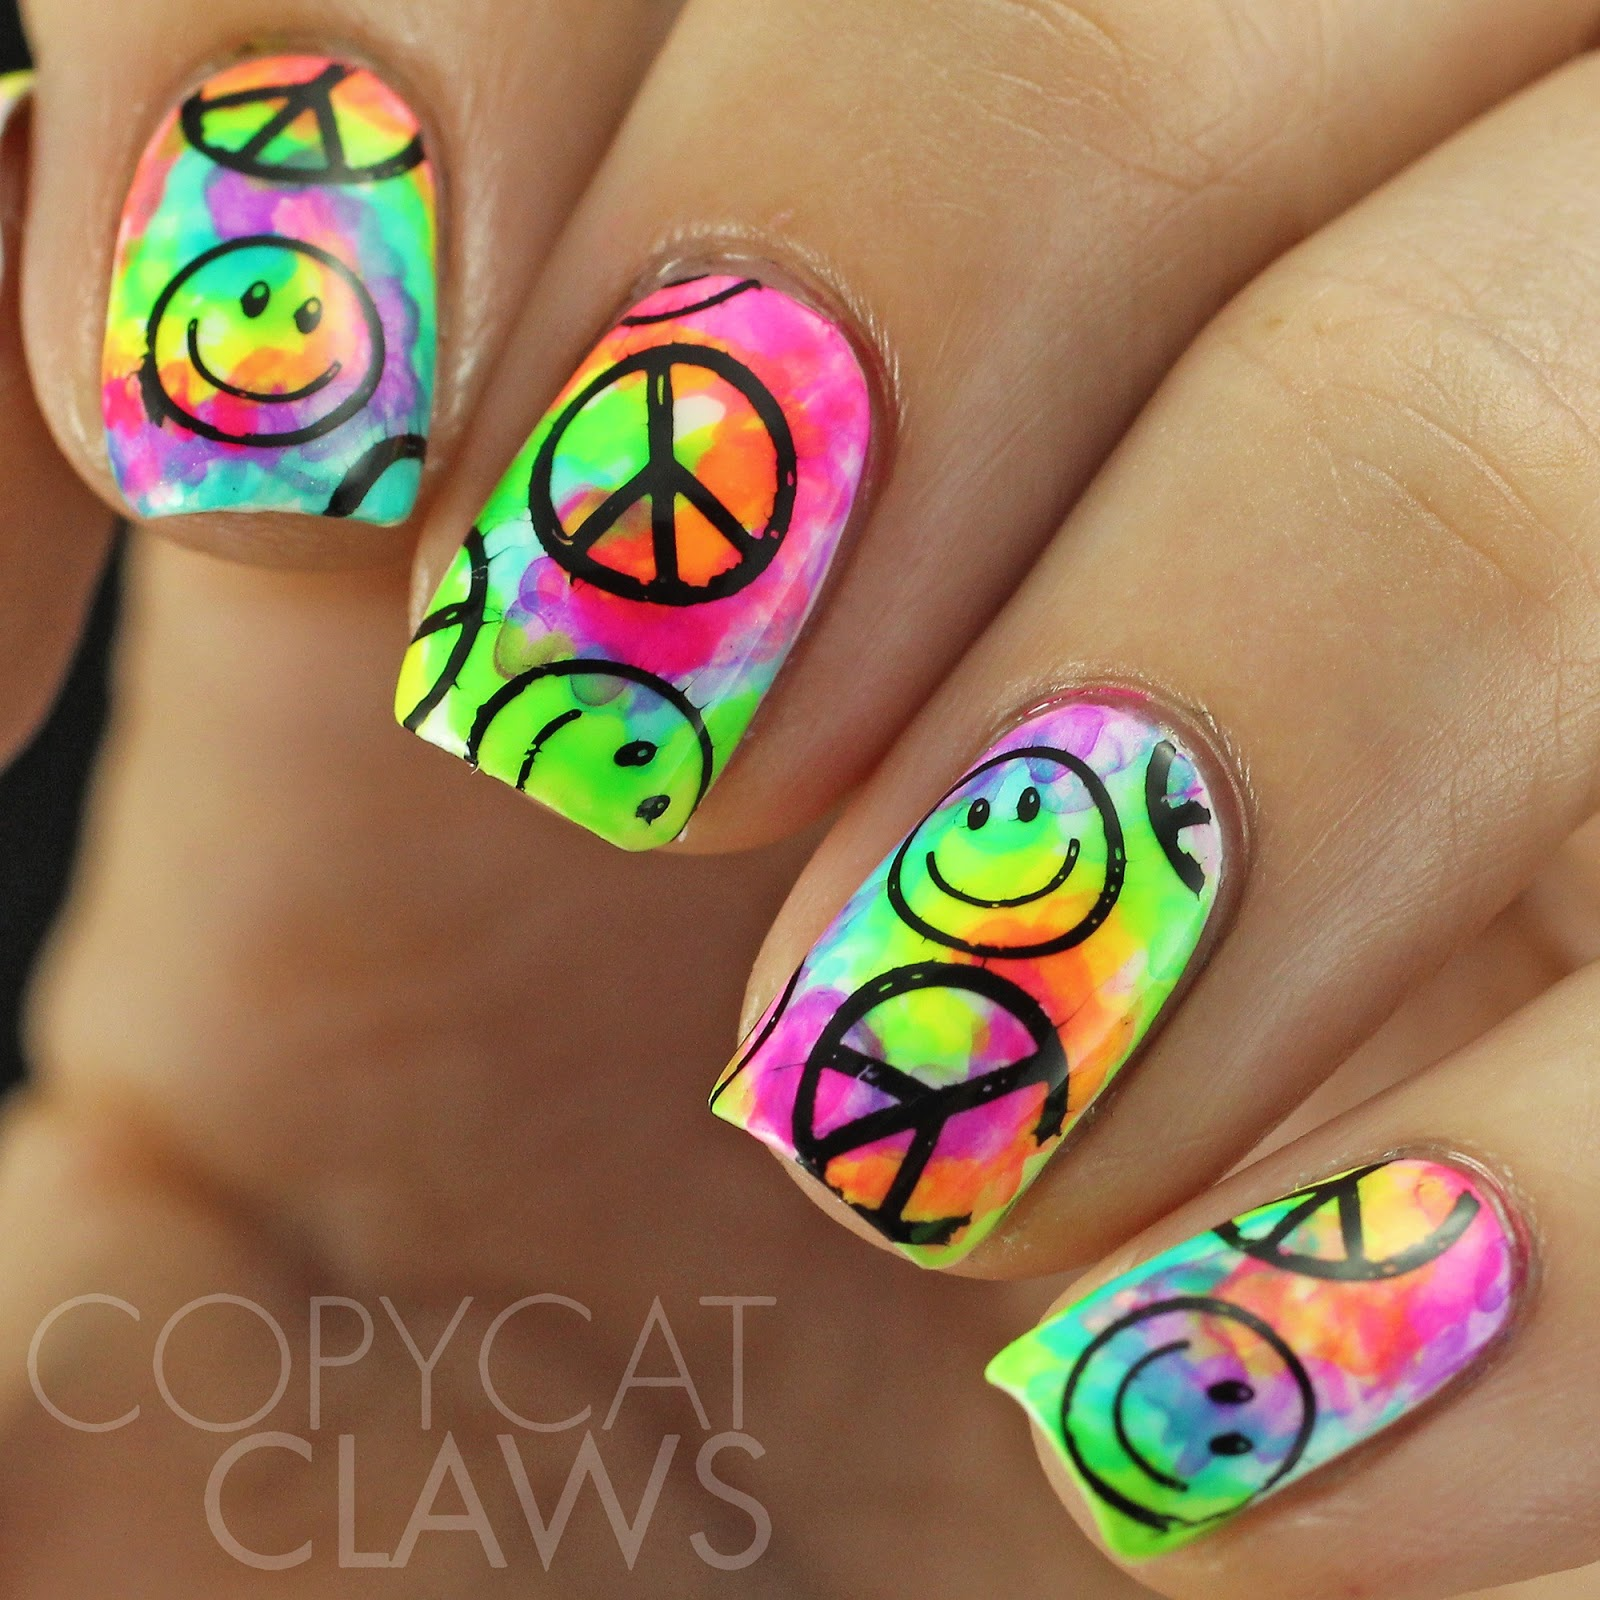 Copycat Claws: Tie Dye Nails With Stamping